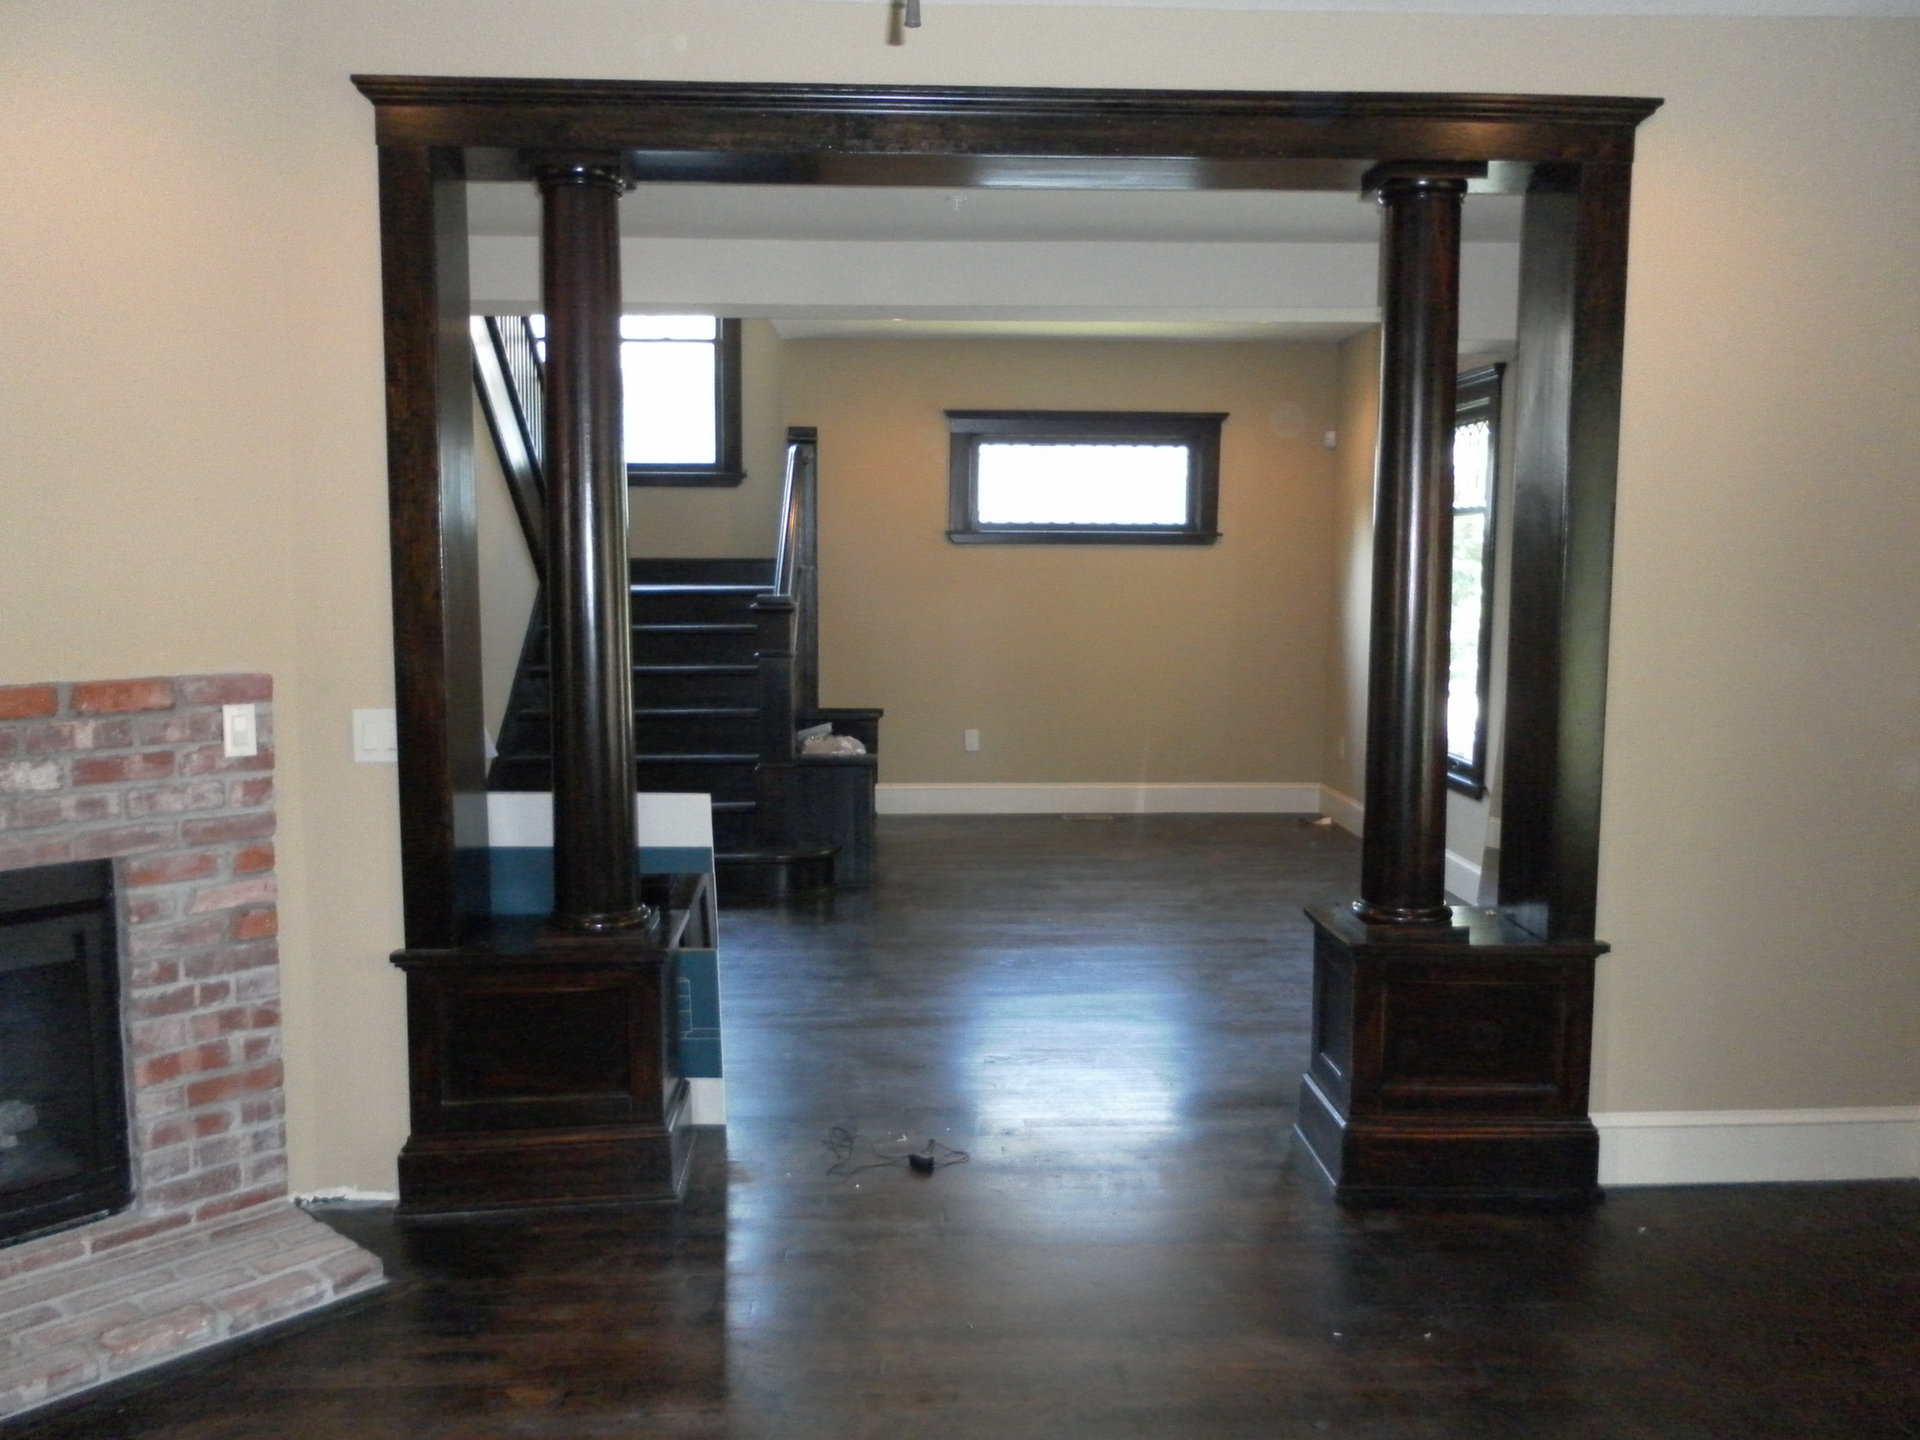 Living Area & Entry Way